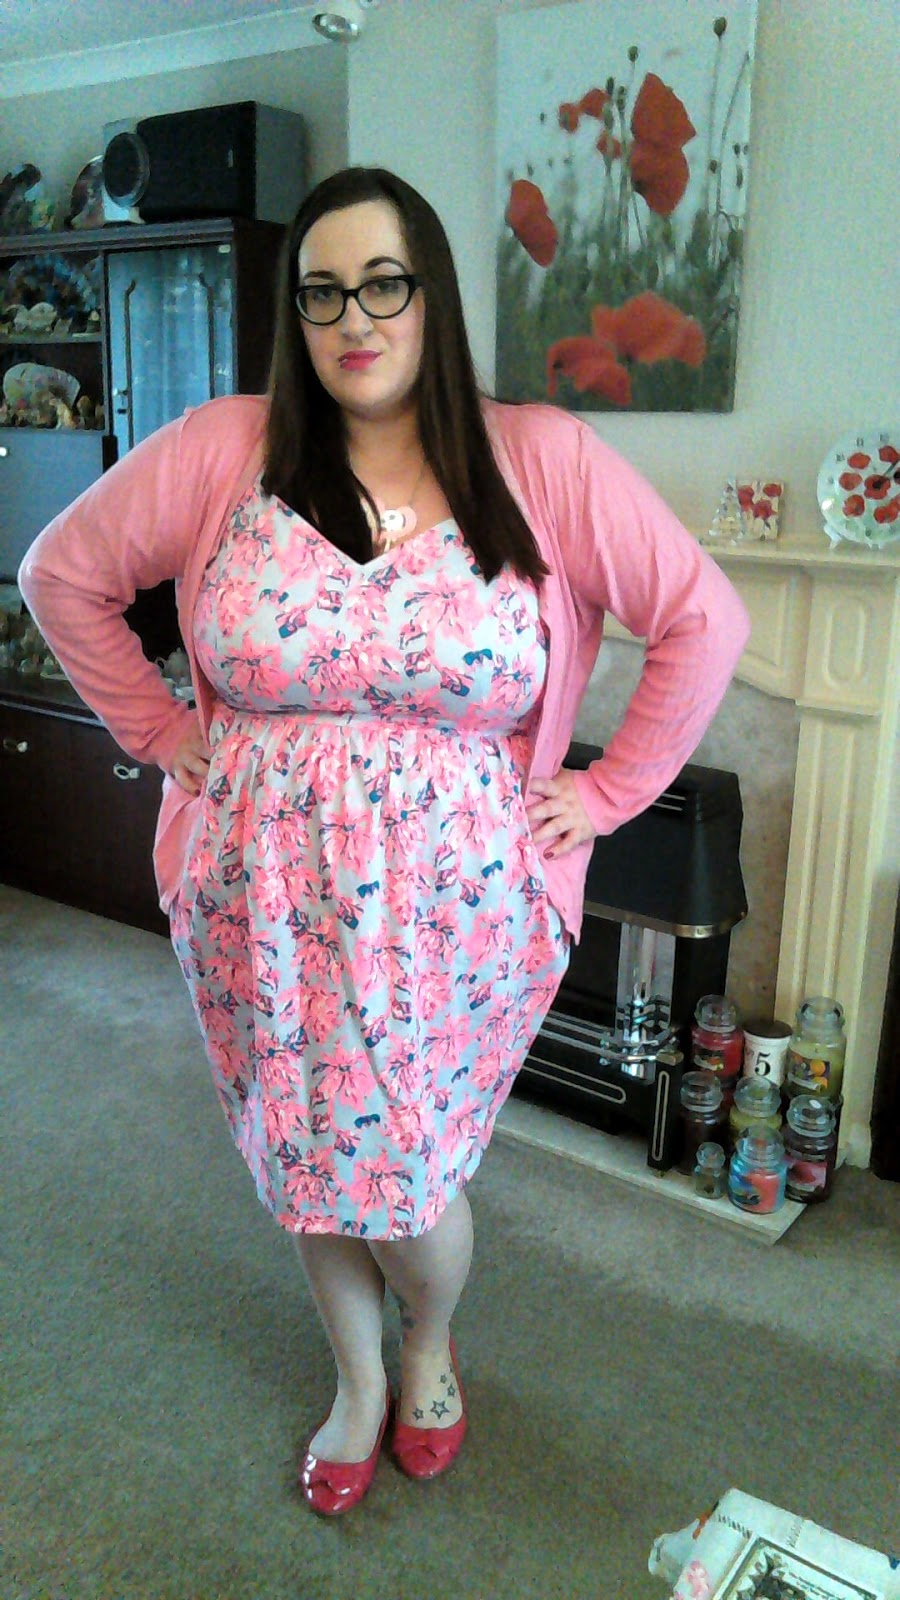 Neon Tulip dress - Does My Blog Make Me Look Fat?